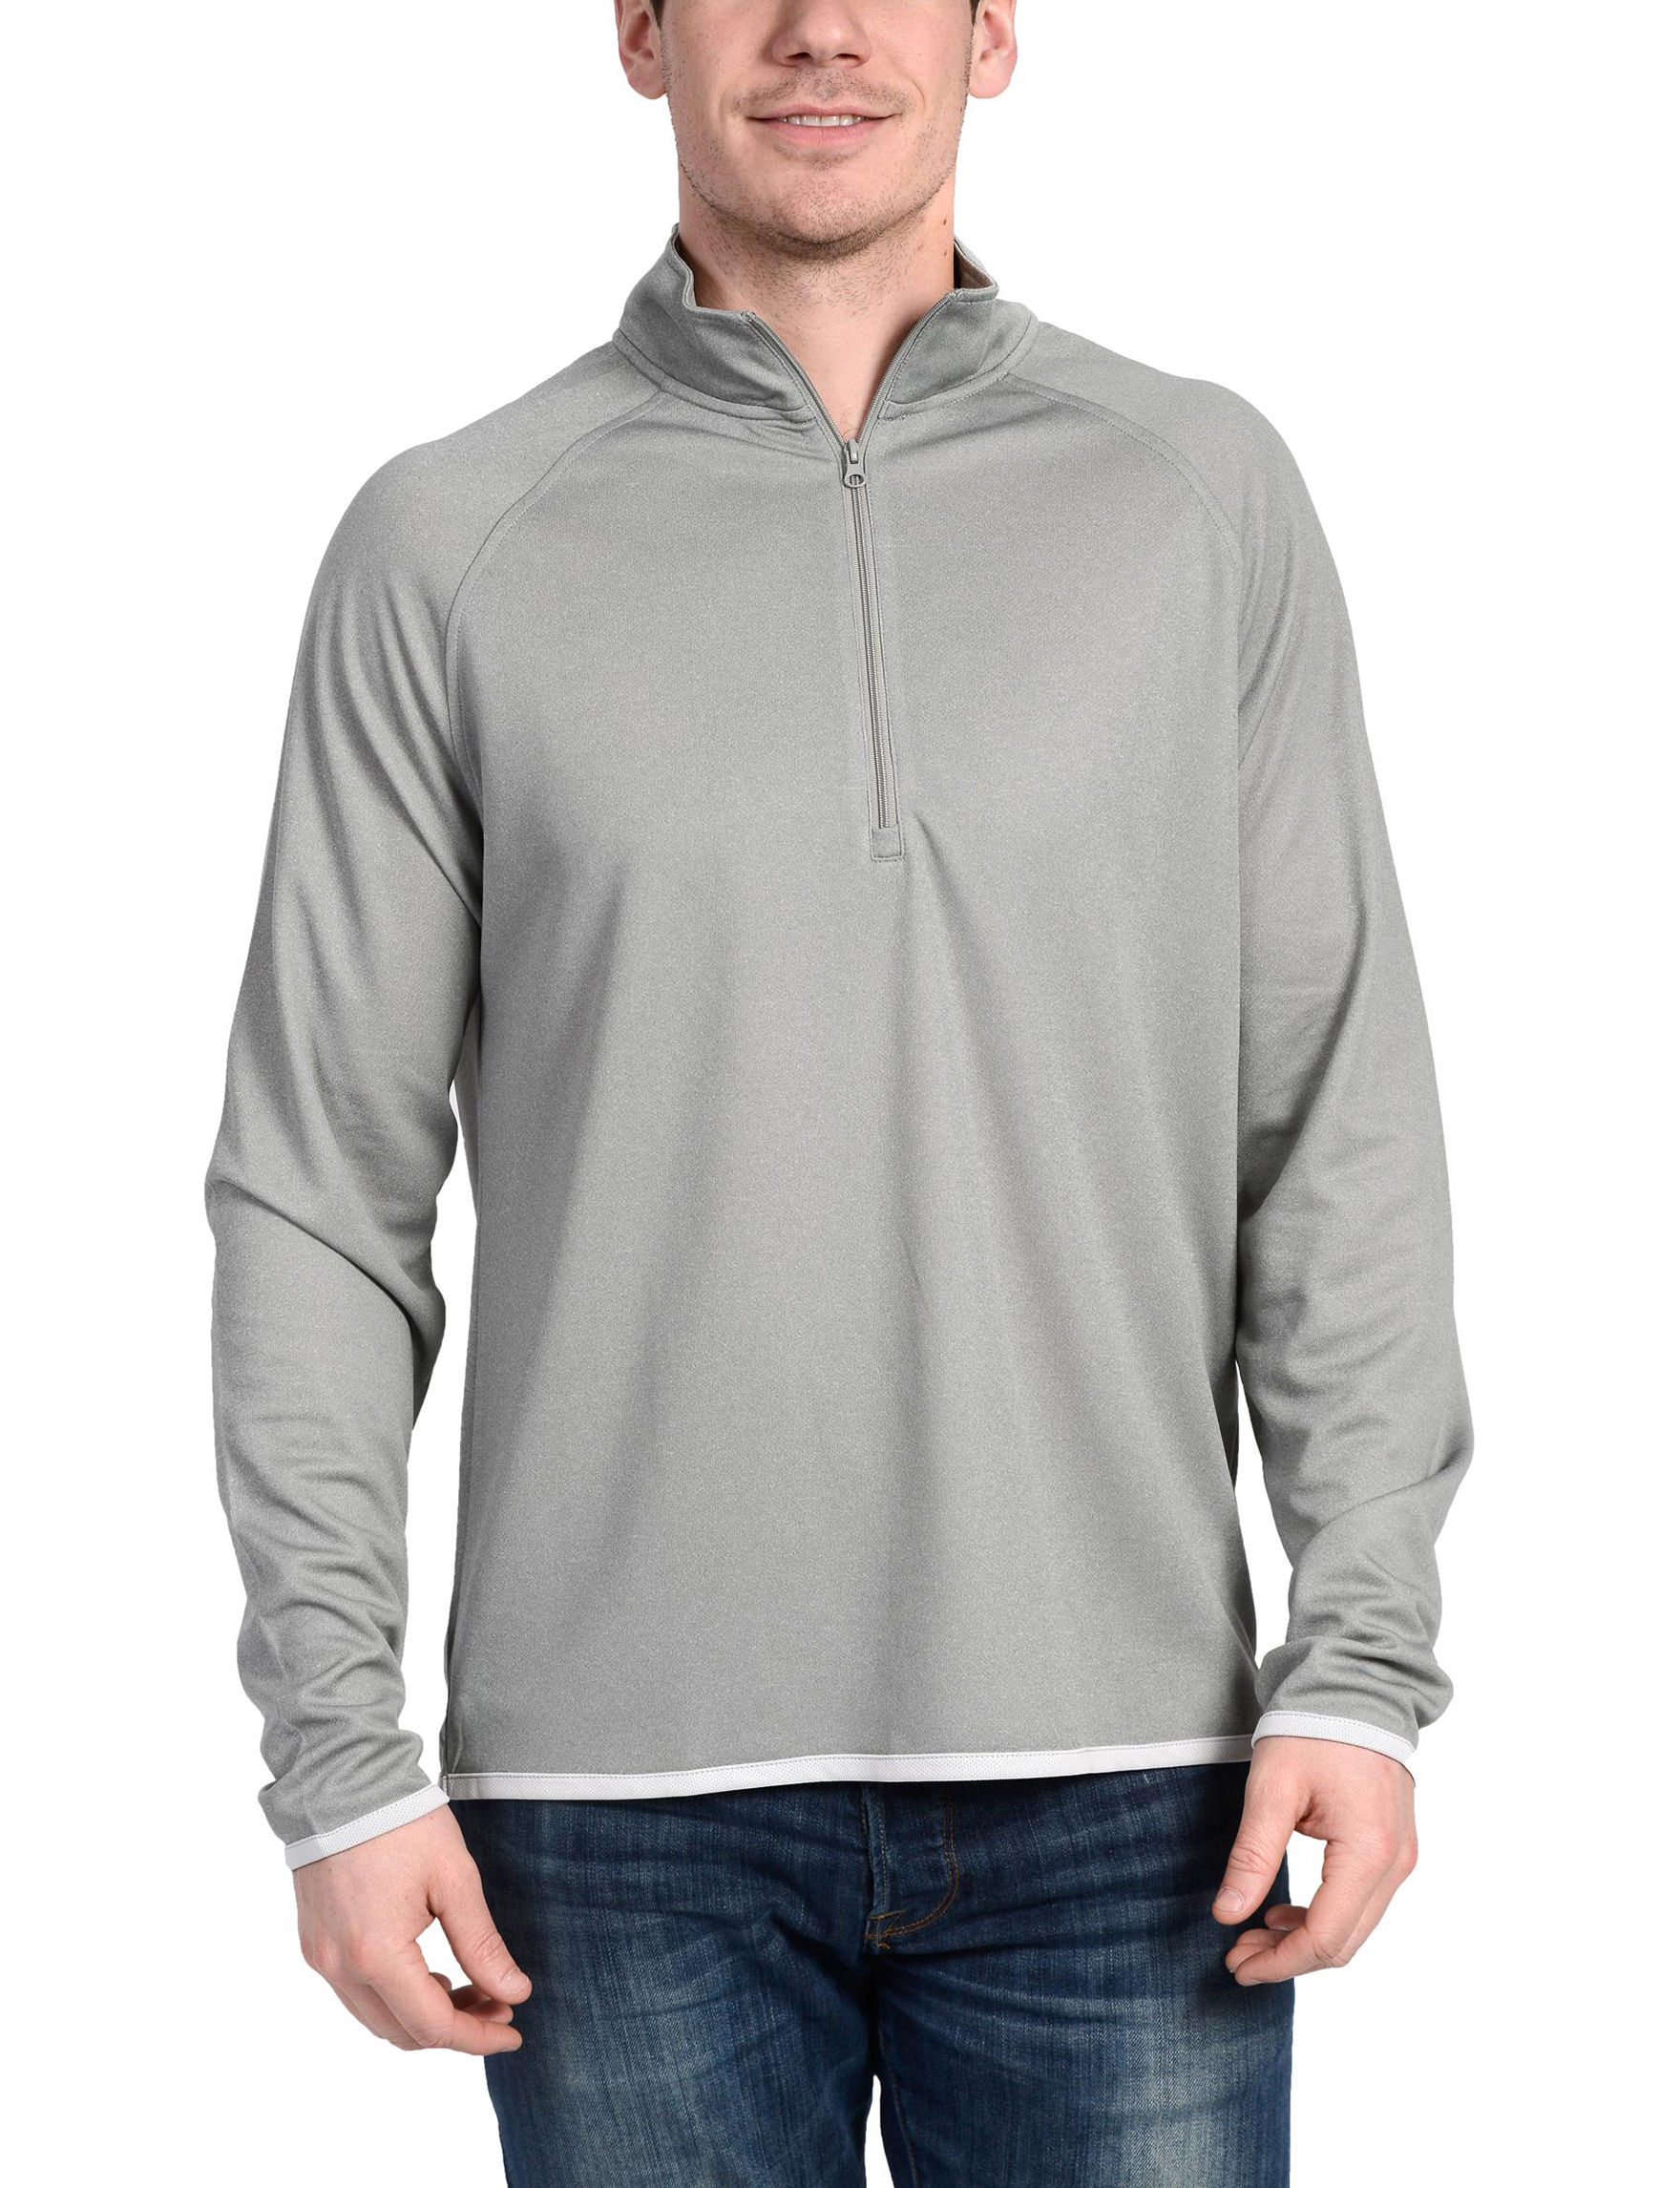 Stanley Heather Grey Pull-overs